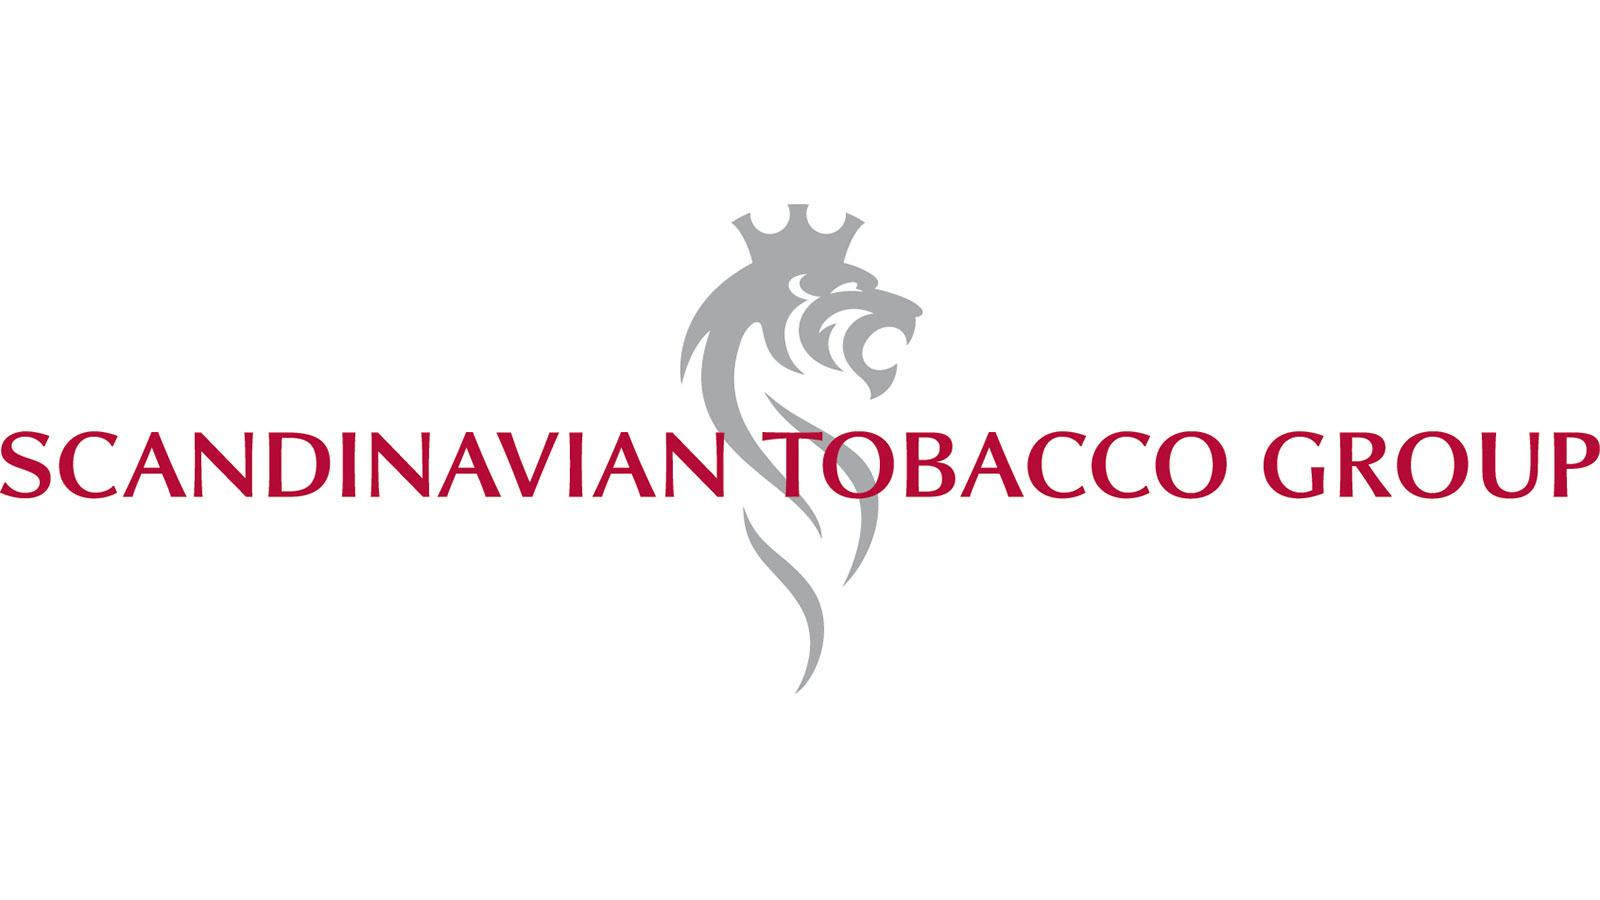 Scandinavian Tobacco Group Reports Flat Sales, Higher Profits